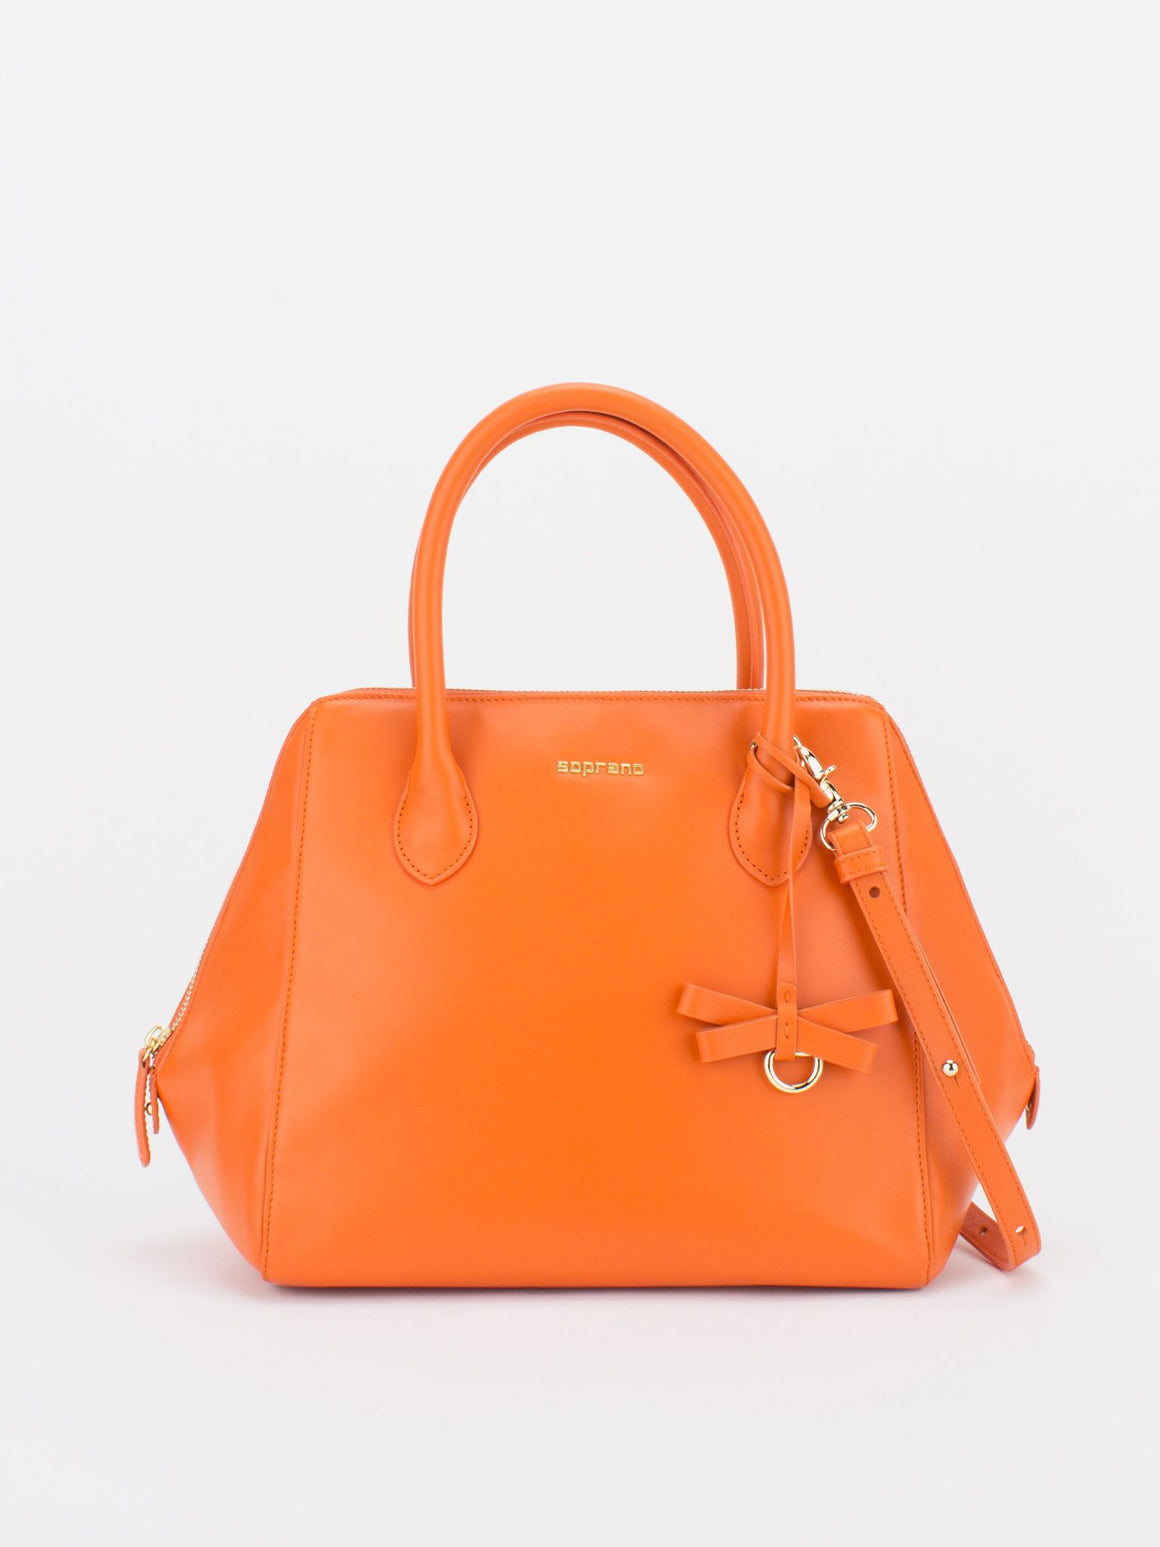 PARIS Leather Satchel - Orange